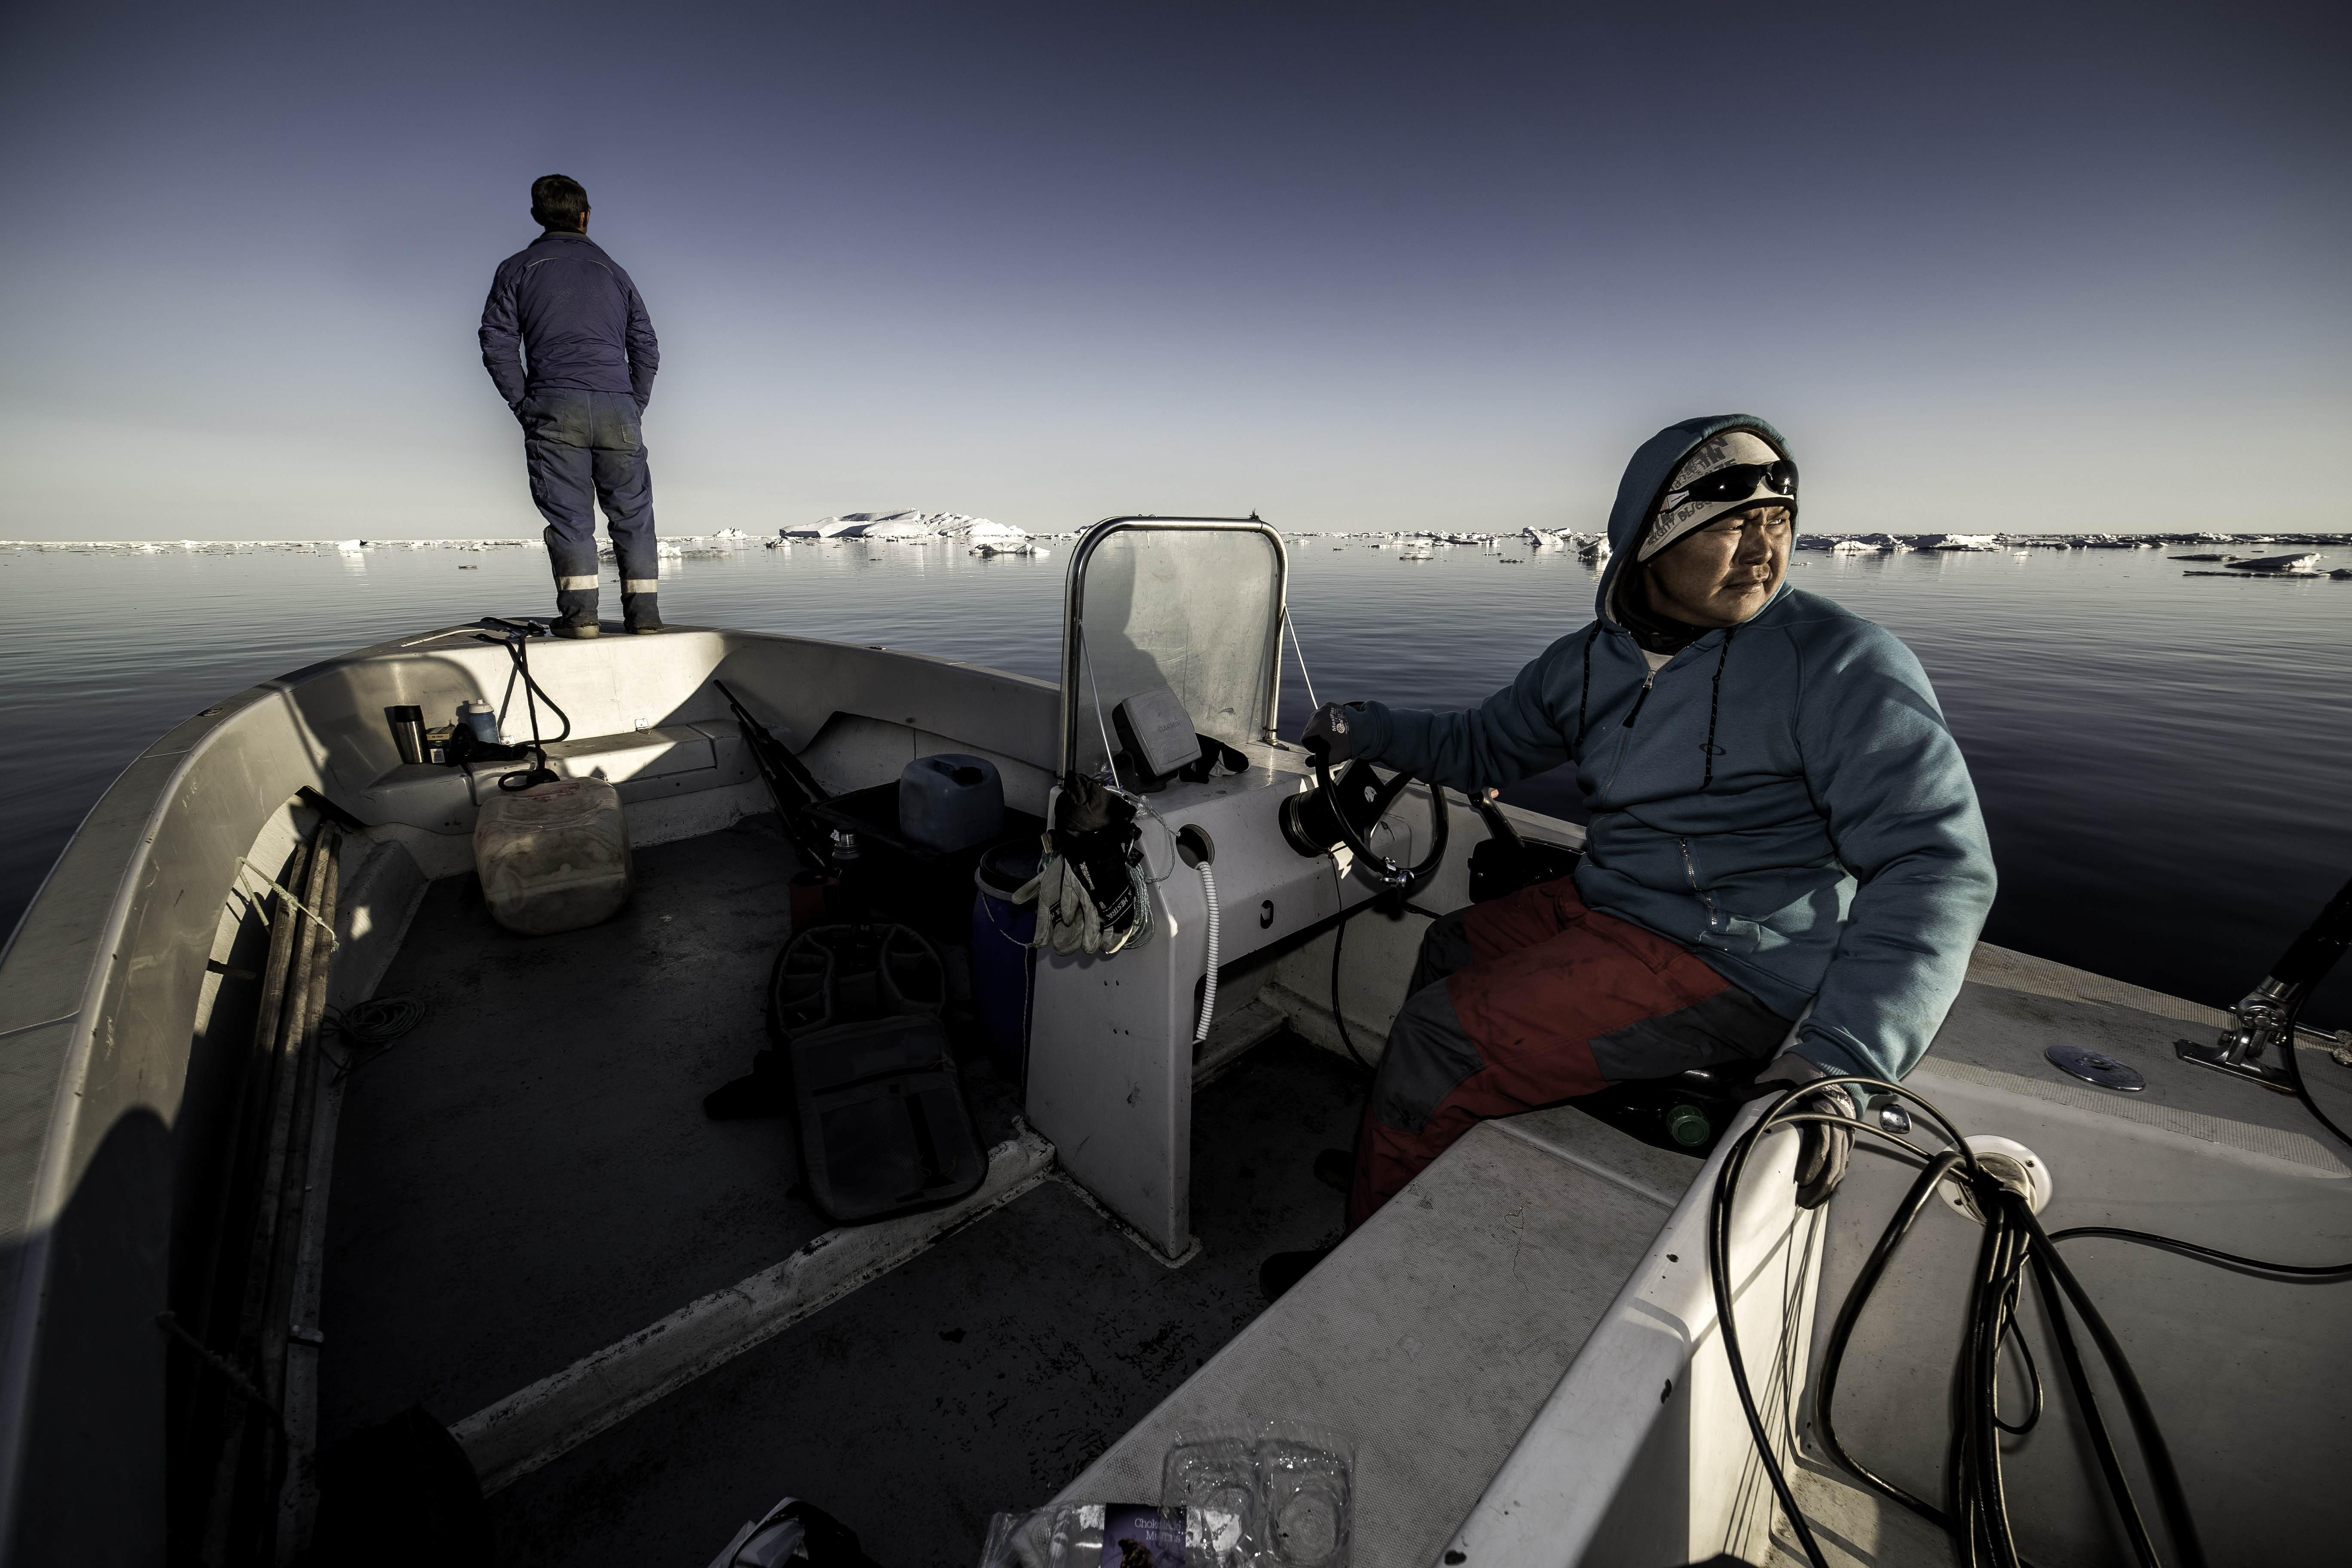 On the eastern side of Northern Greenland, hunters travel out to sea in search of seals. Credit: Visit Greenland-Mads Pihl/flickr